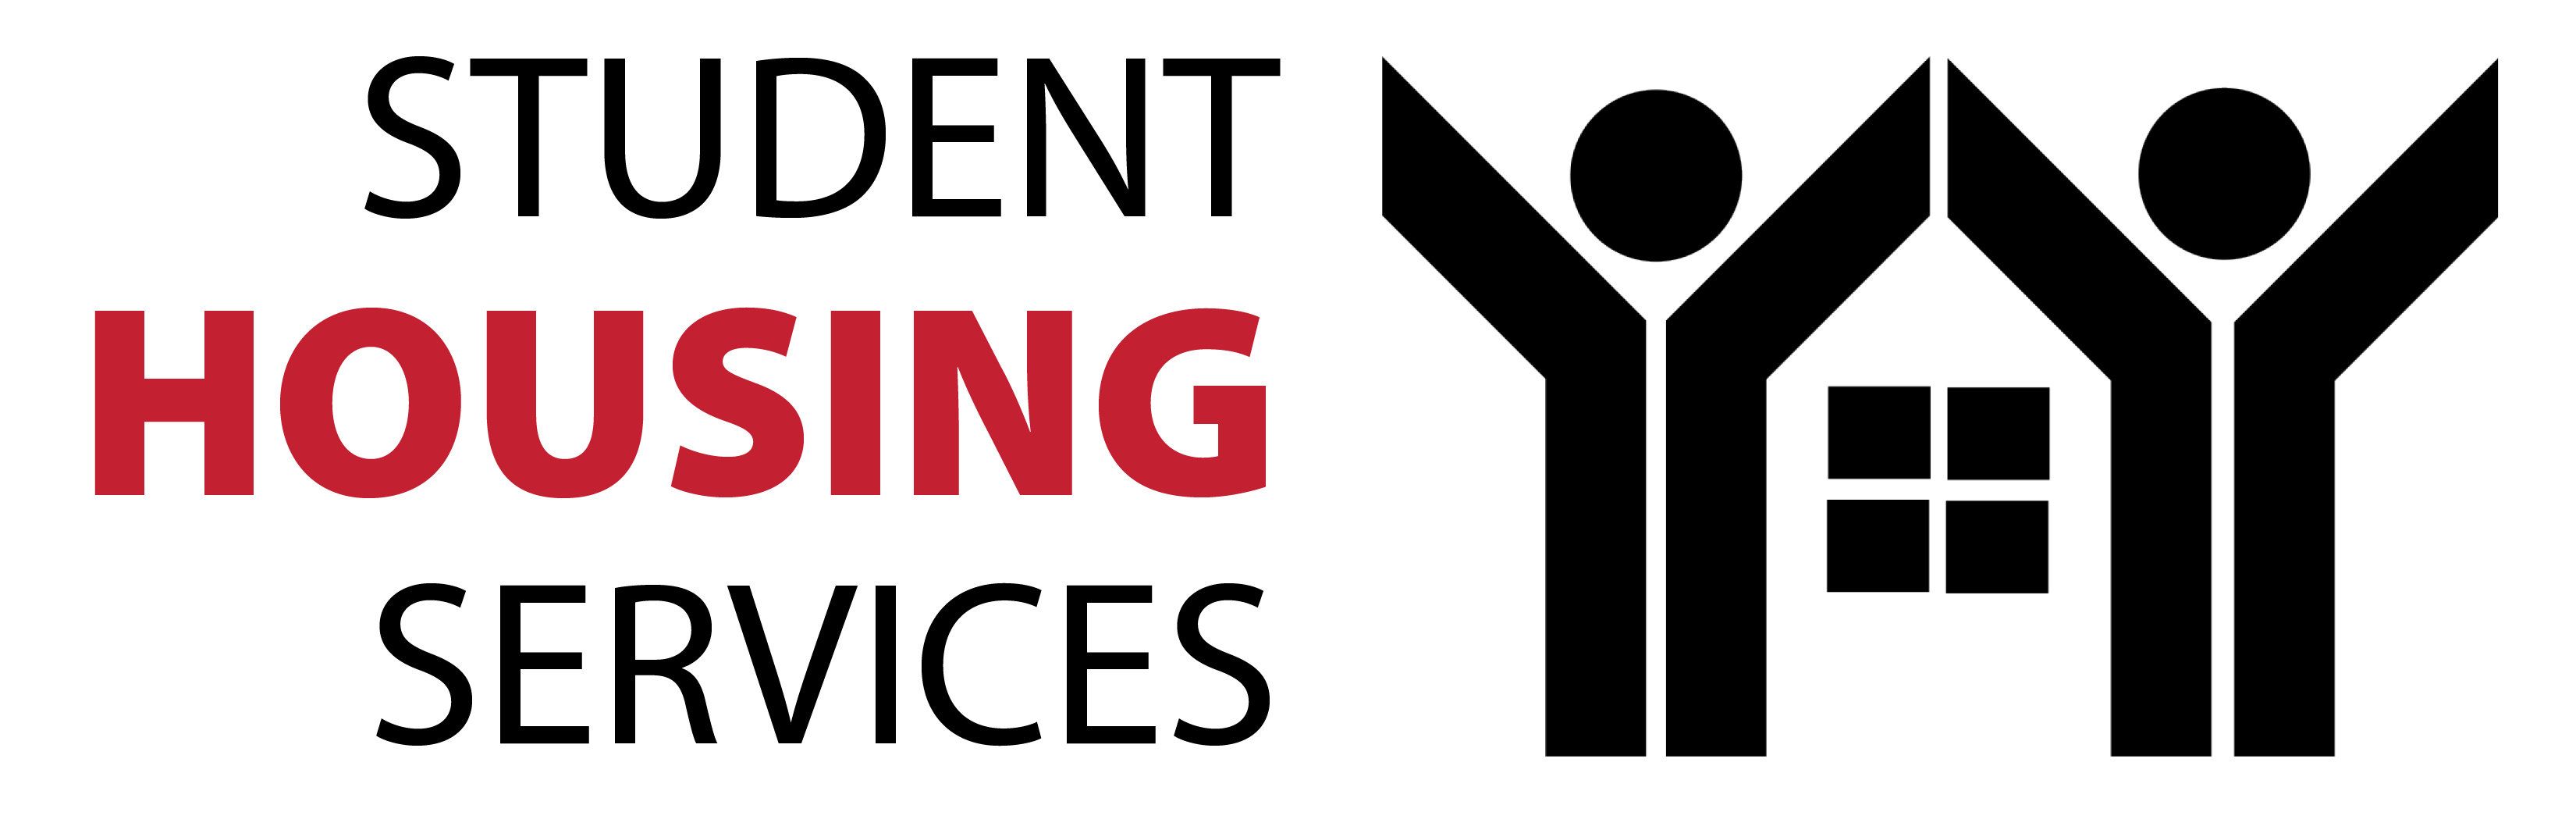 Student Housing Services logo